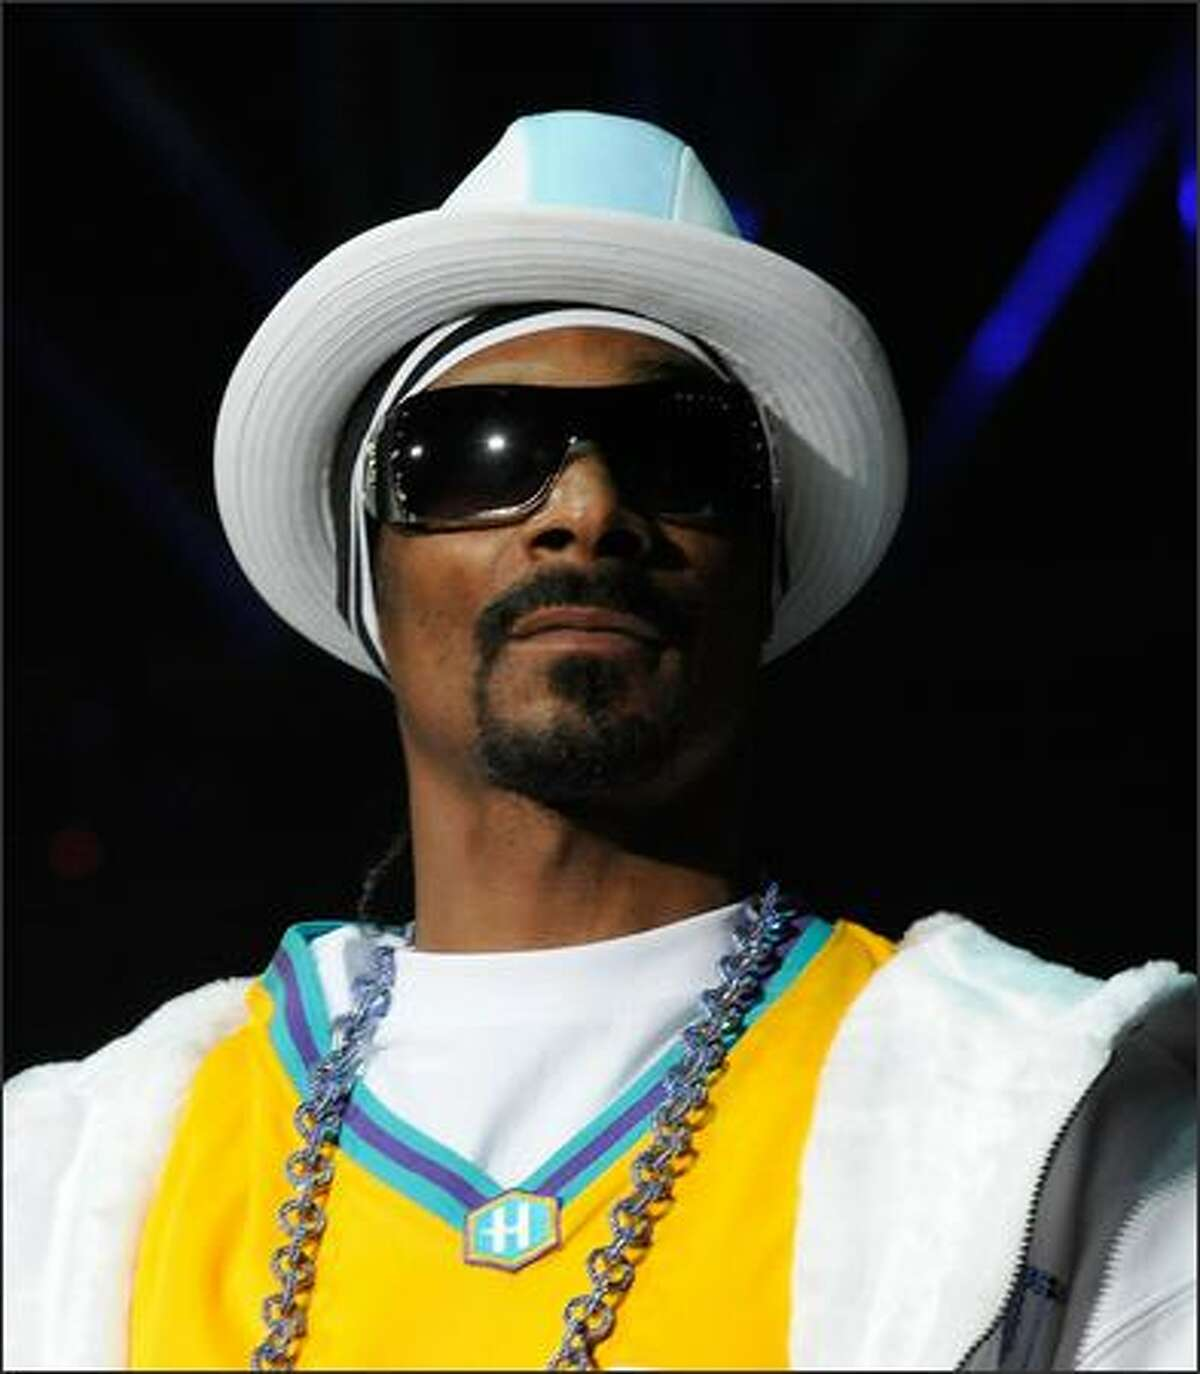 Rapper Snoop Dogg performs at the KIIS-FM's 2008 Wango Tango concert held at the Verizon Wireless Amphitheater on May 10, 2008 in Irvine, California.